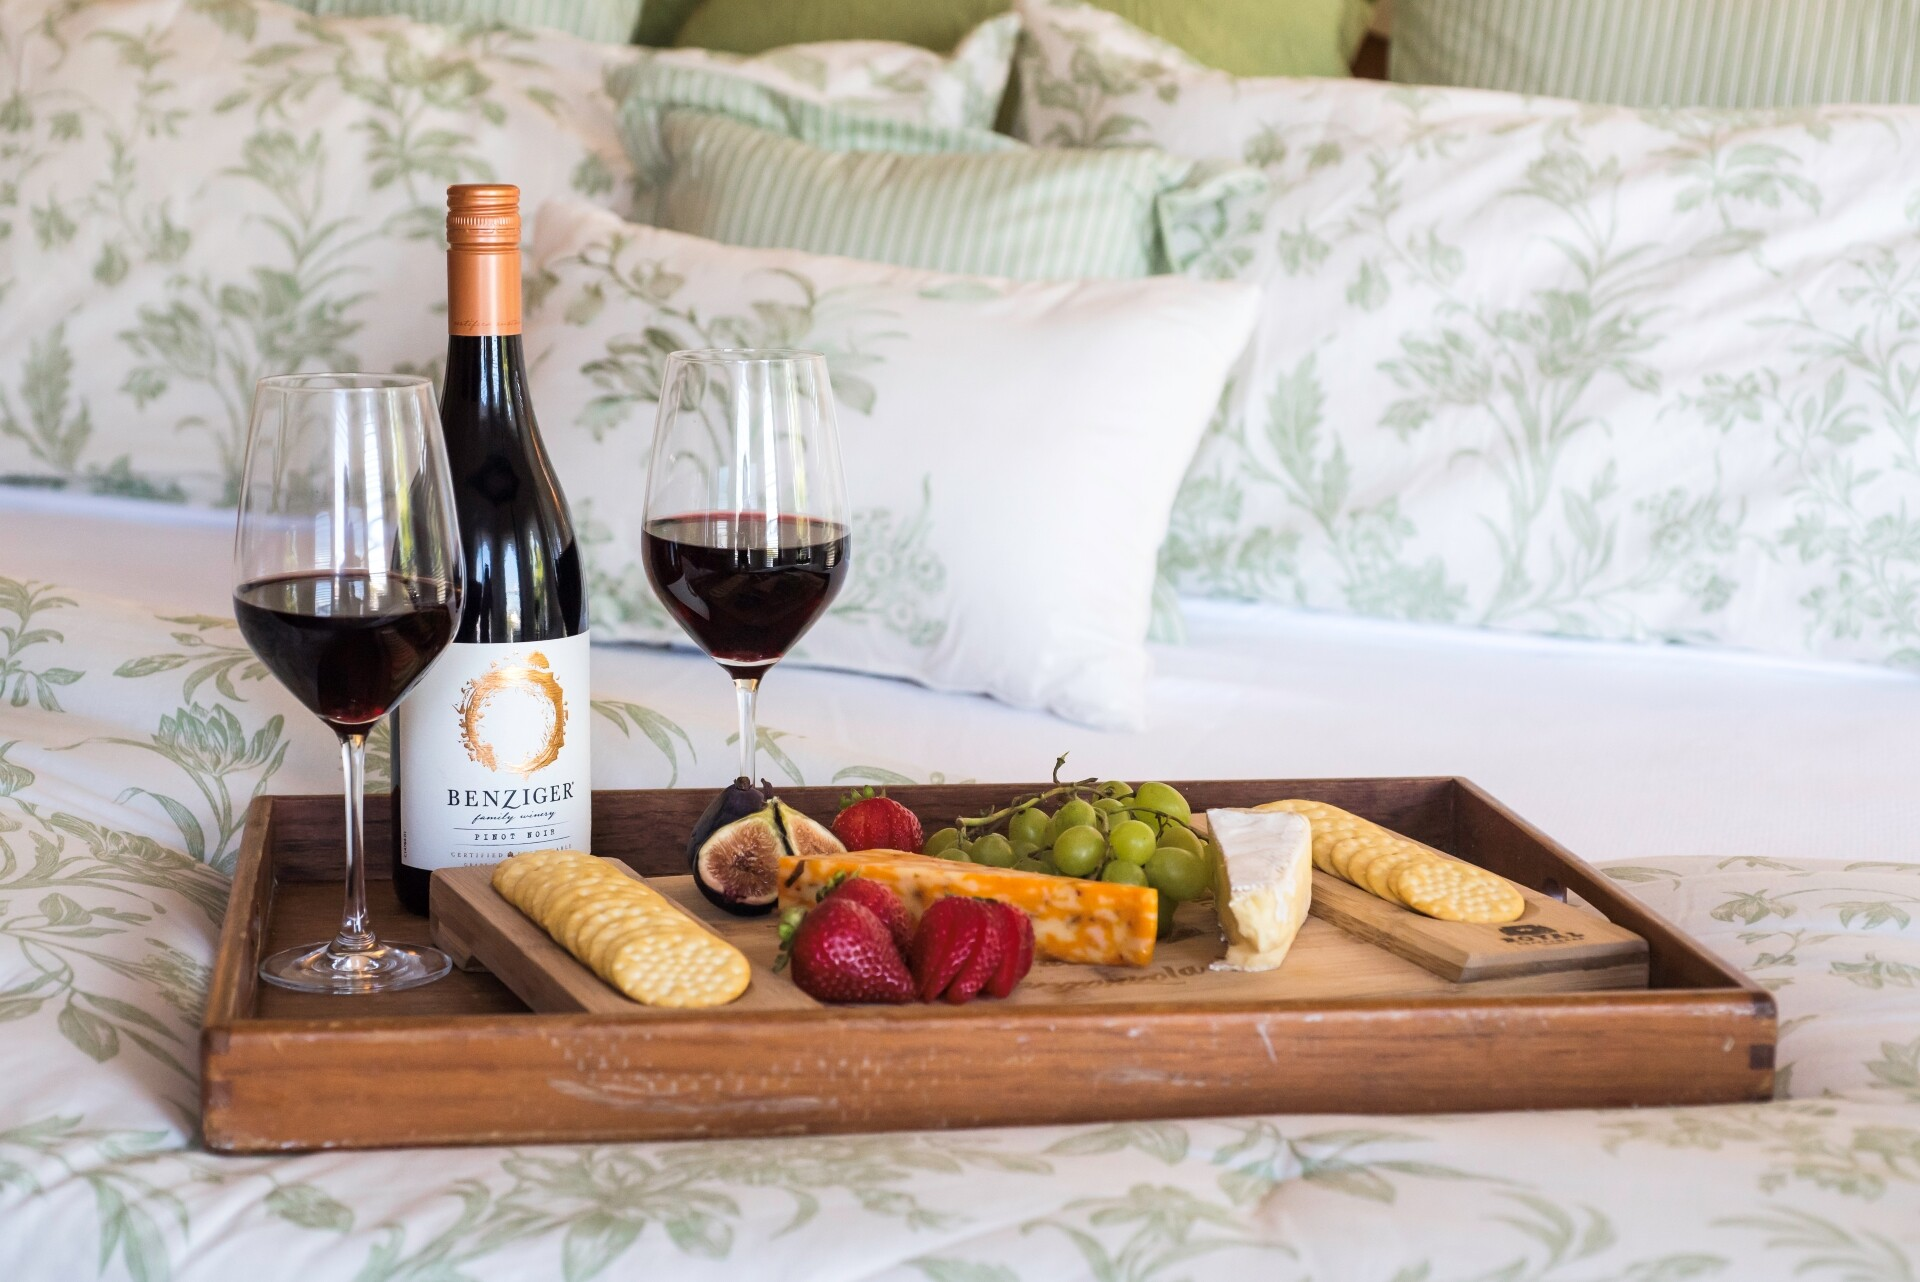 King bed with wine and cheese tray